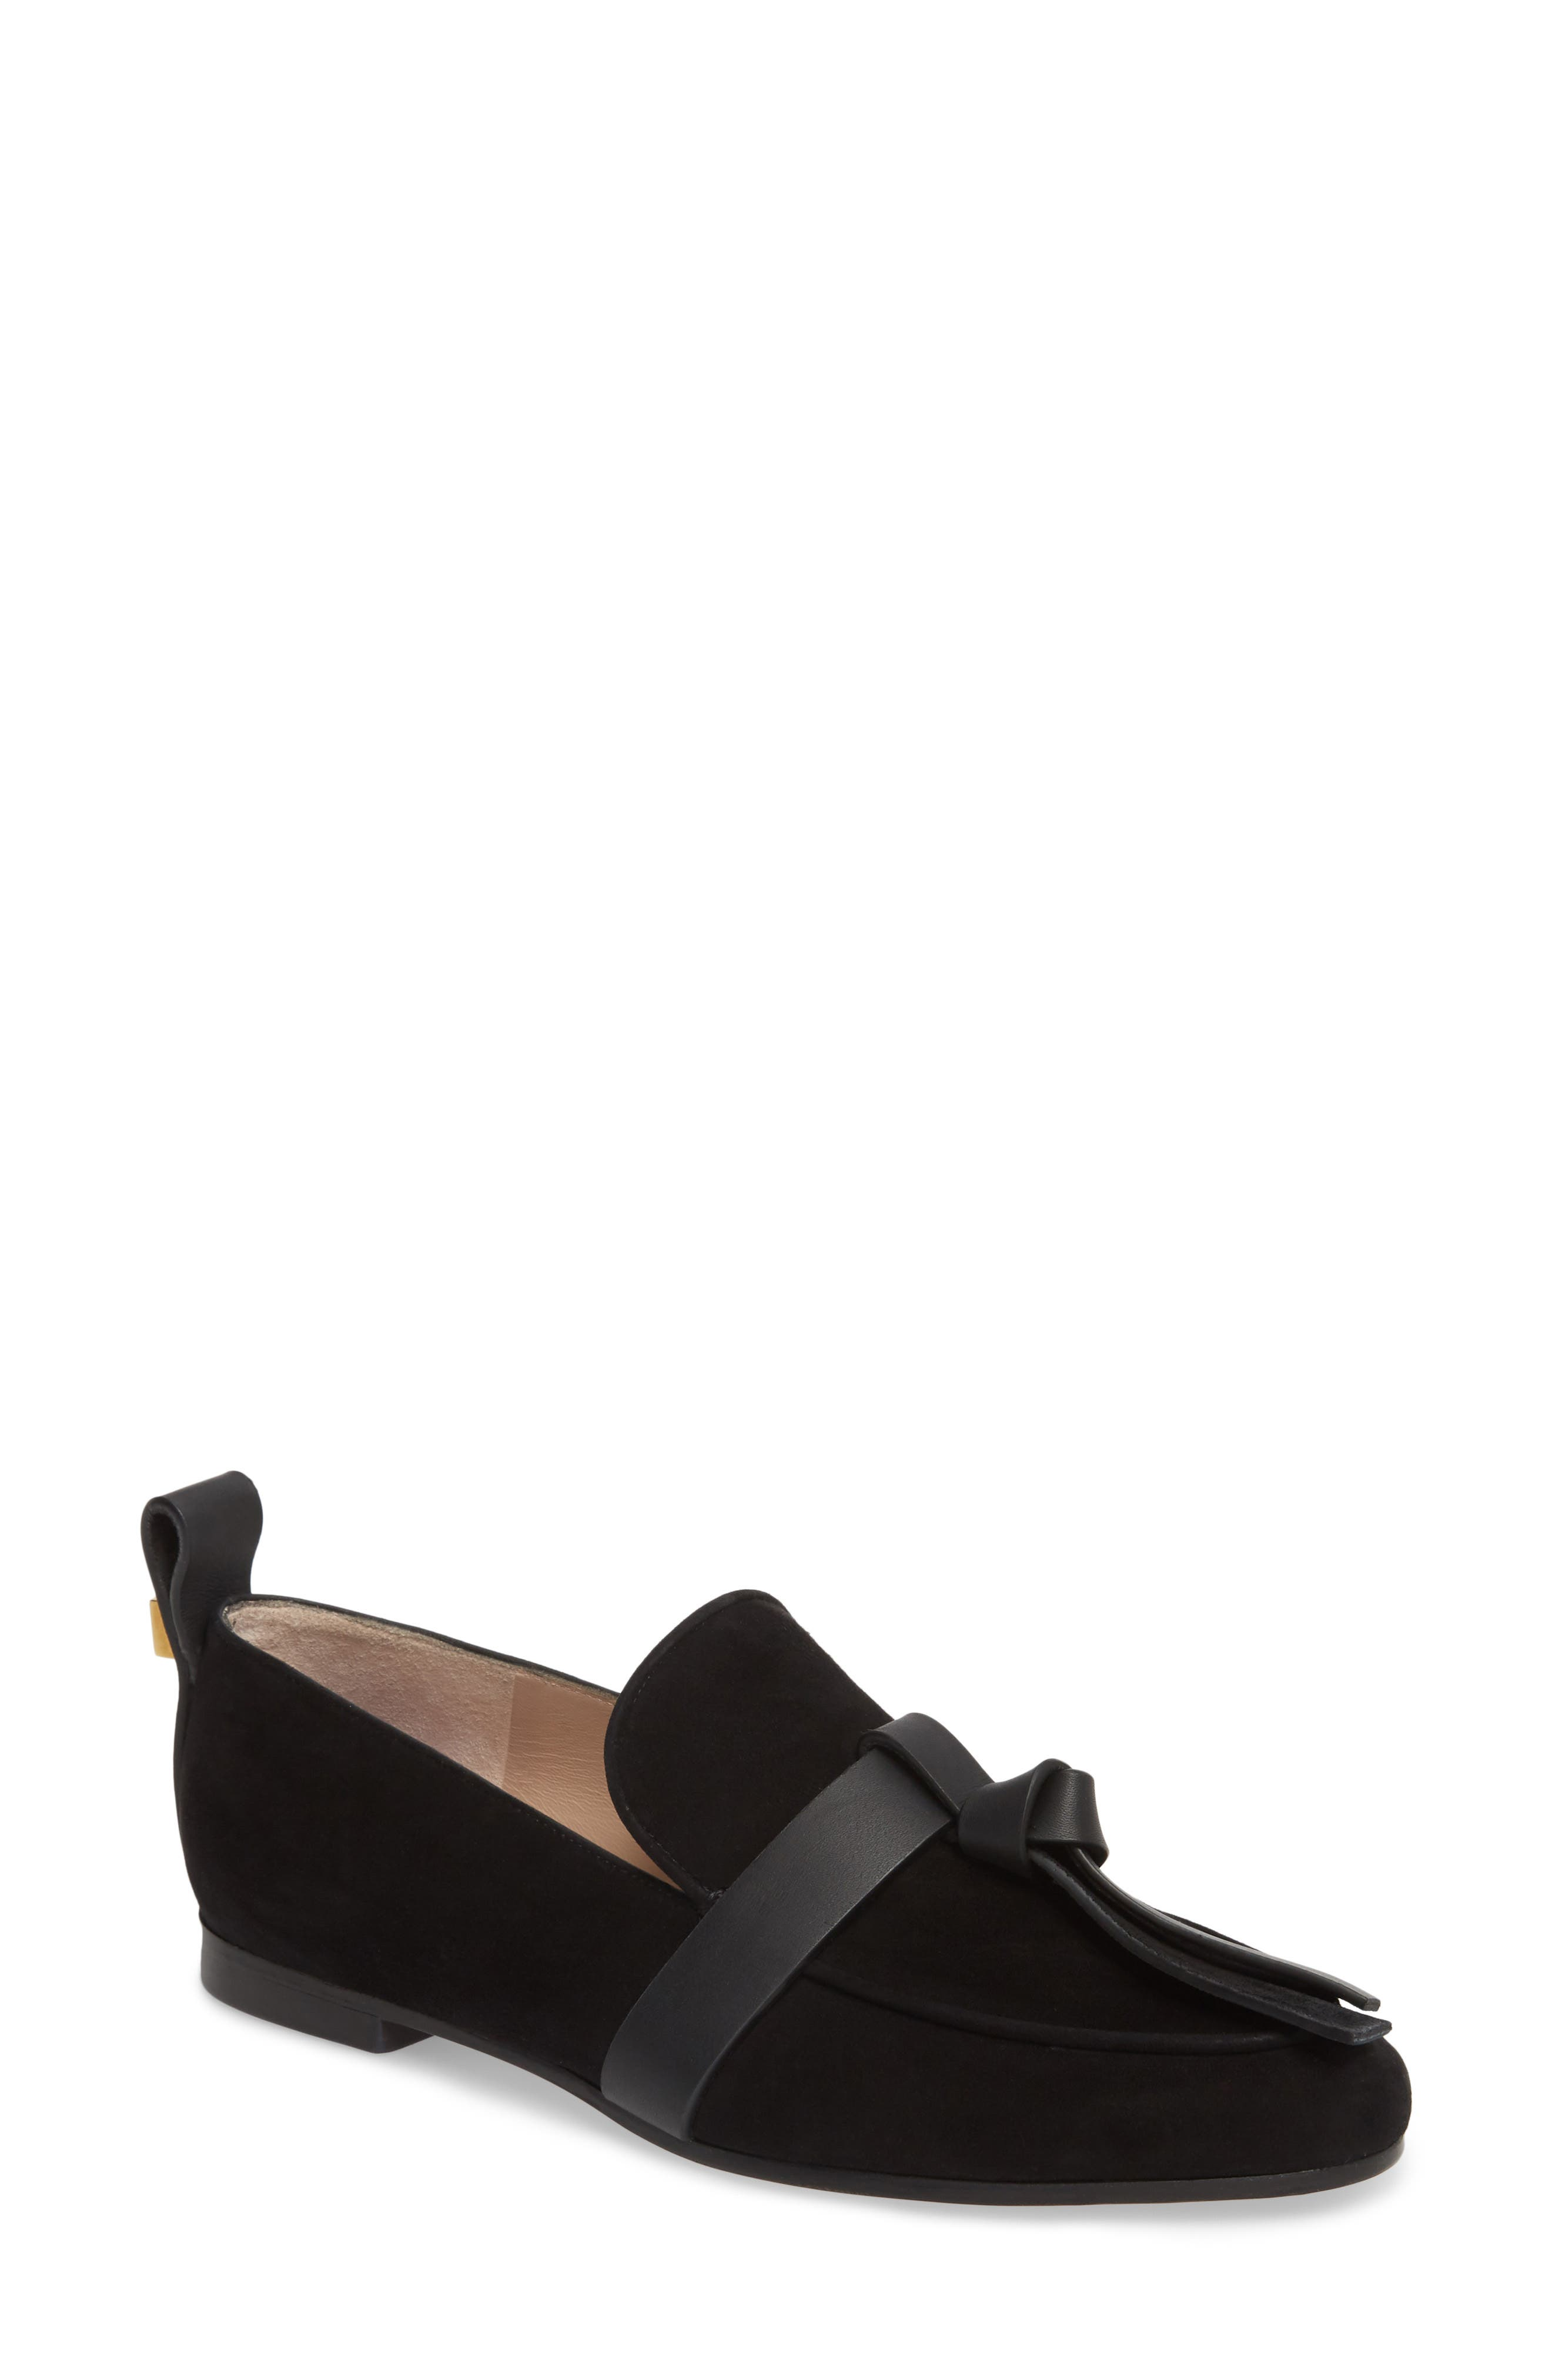 Prescott Knotted Loafer,                         Main,                         color, 001